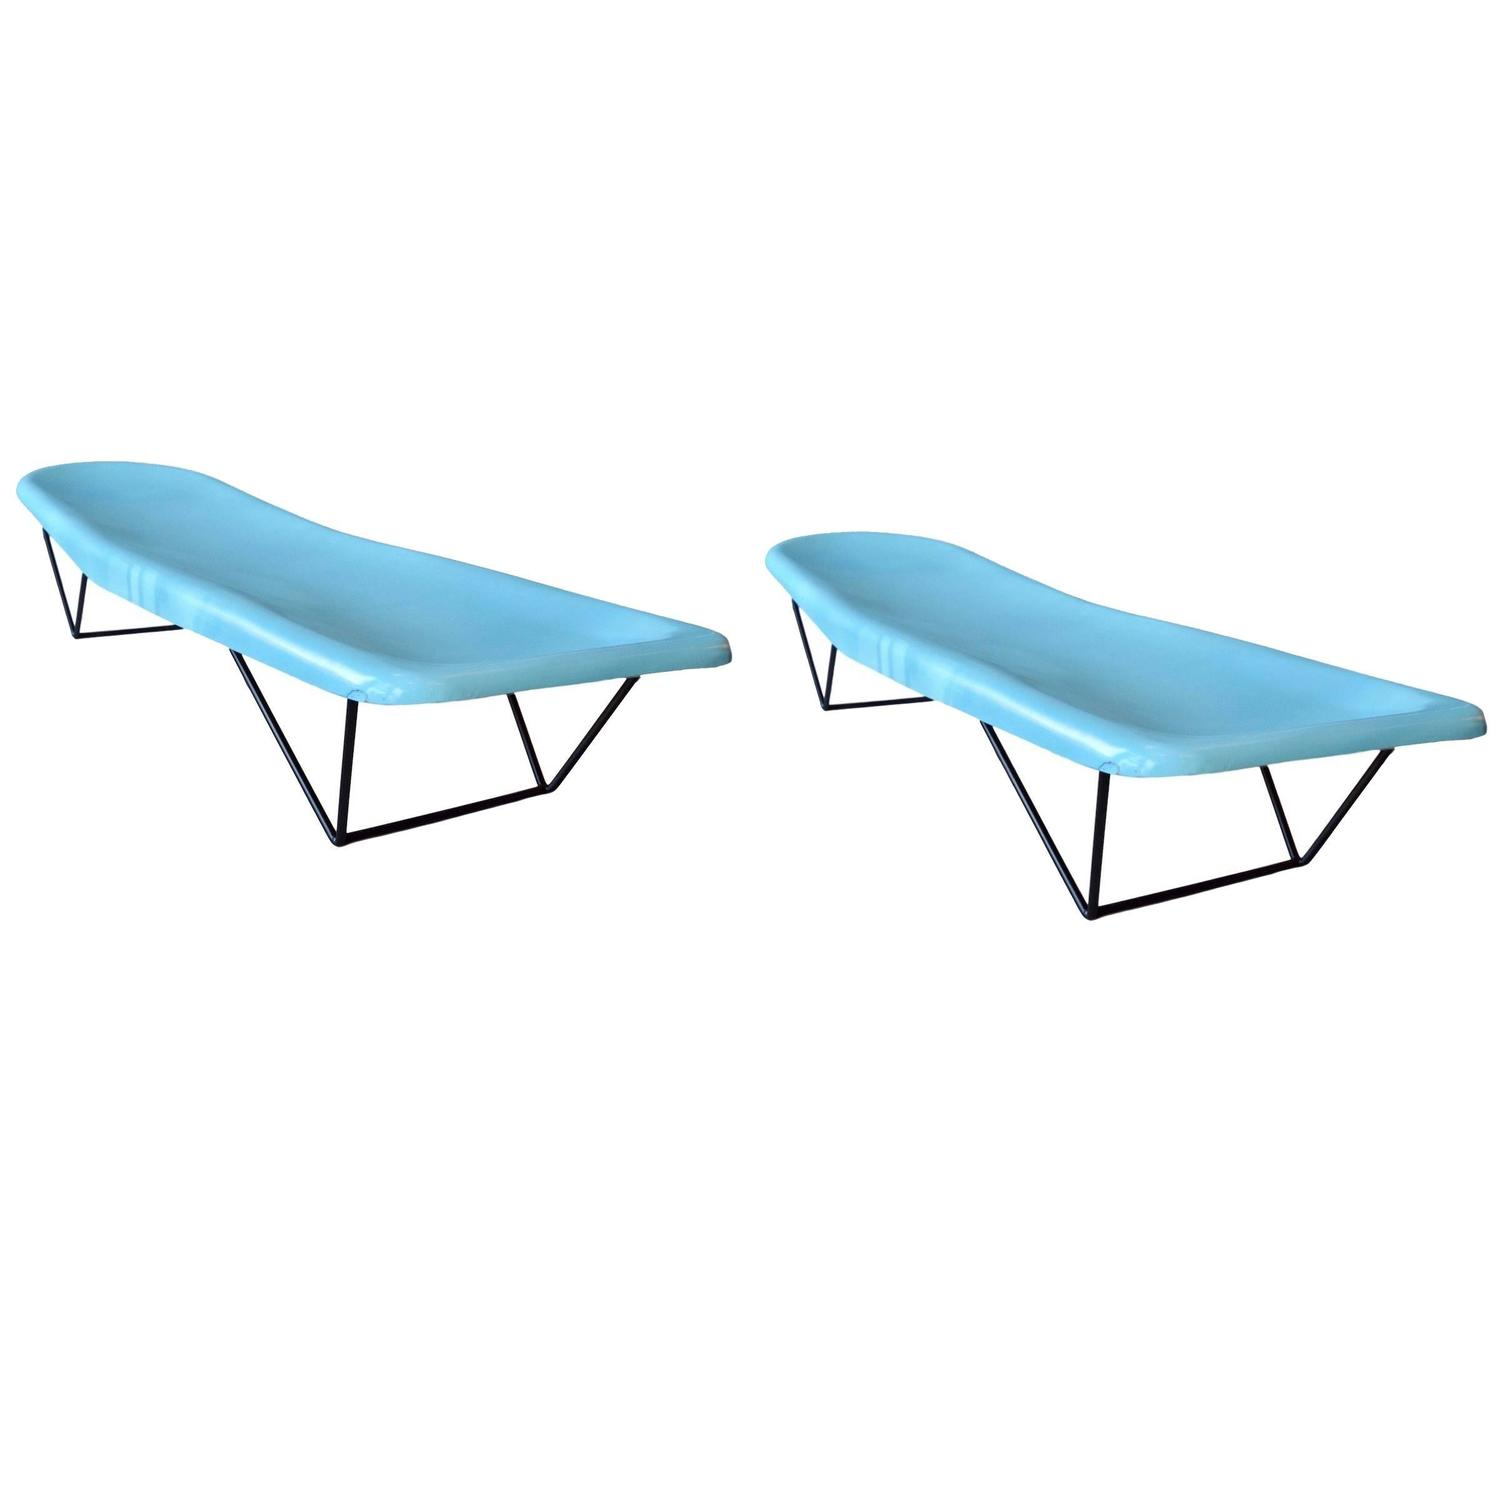 Poolside Chairs Poolside Lounge Chairs Furniture Chaise Lounge Patio